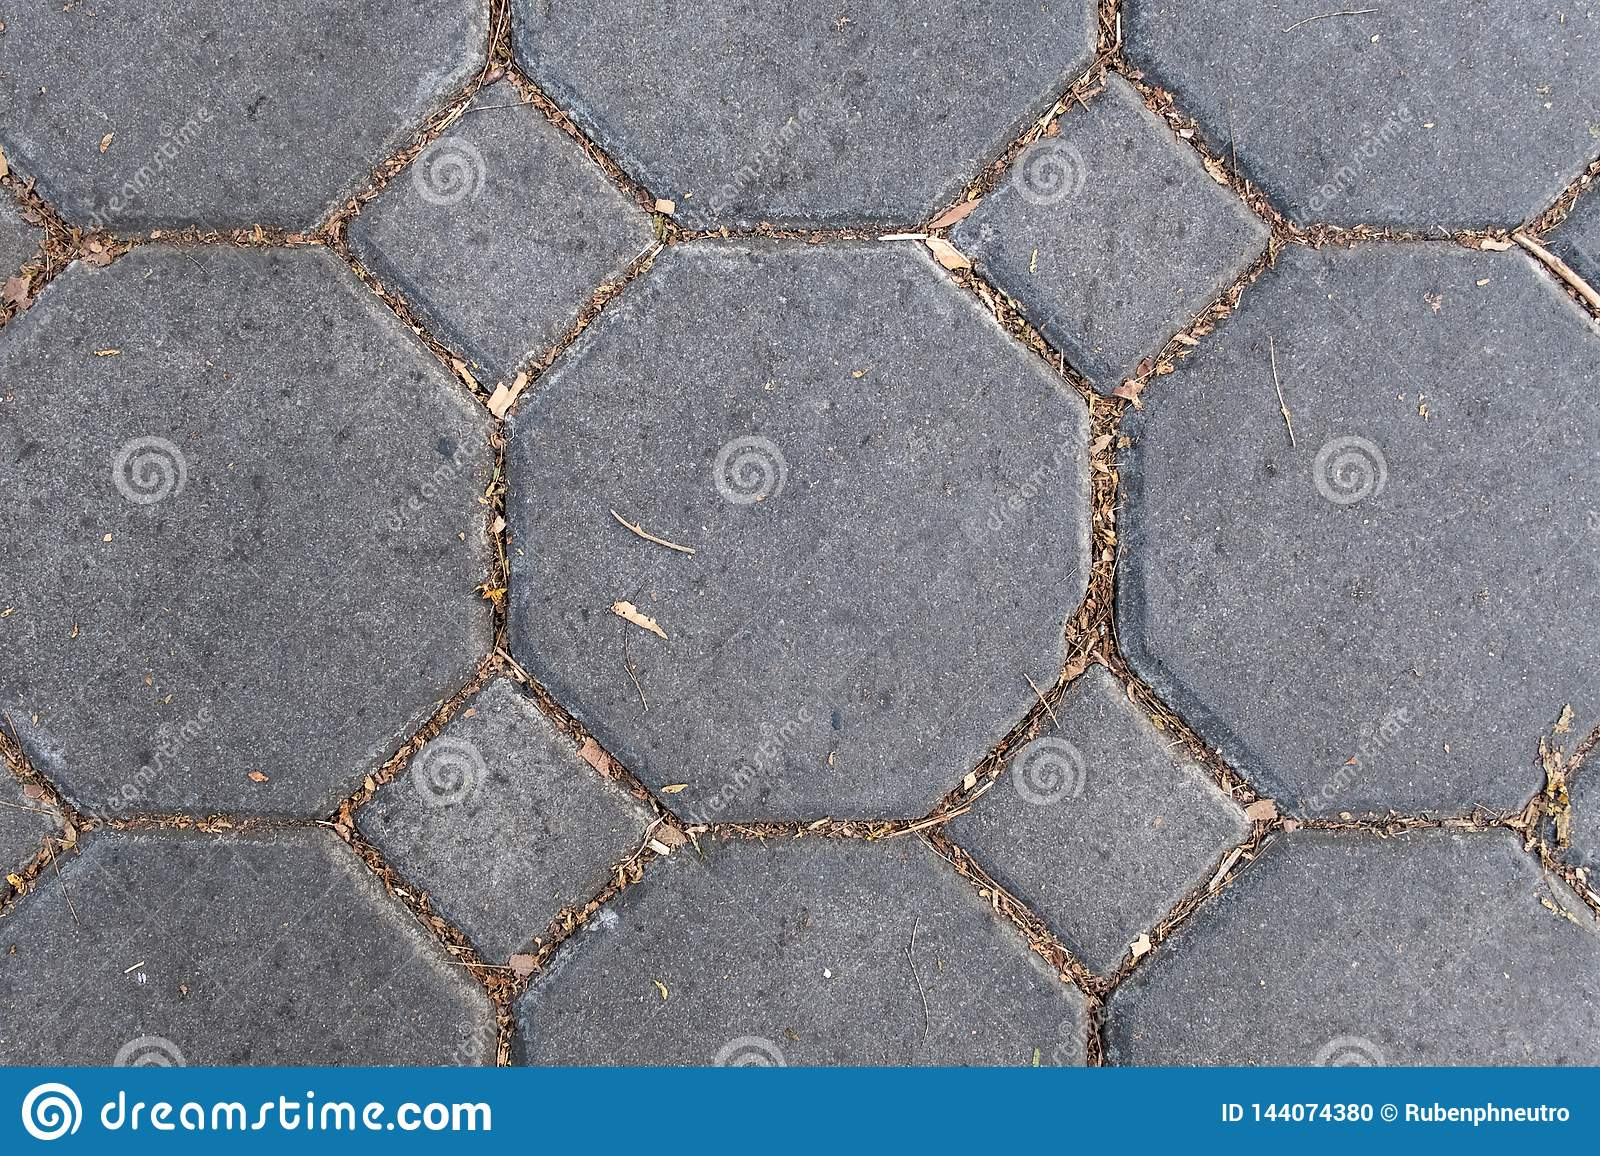 Texture of brick stone pattern floor close up